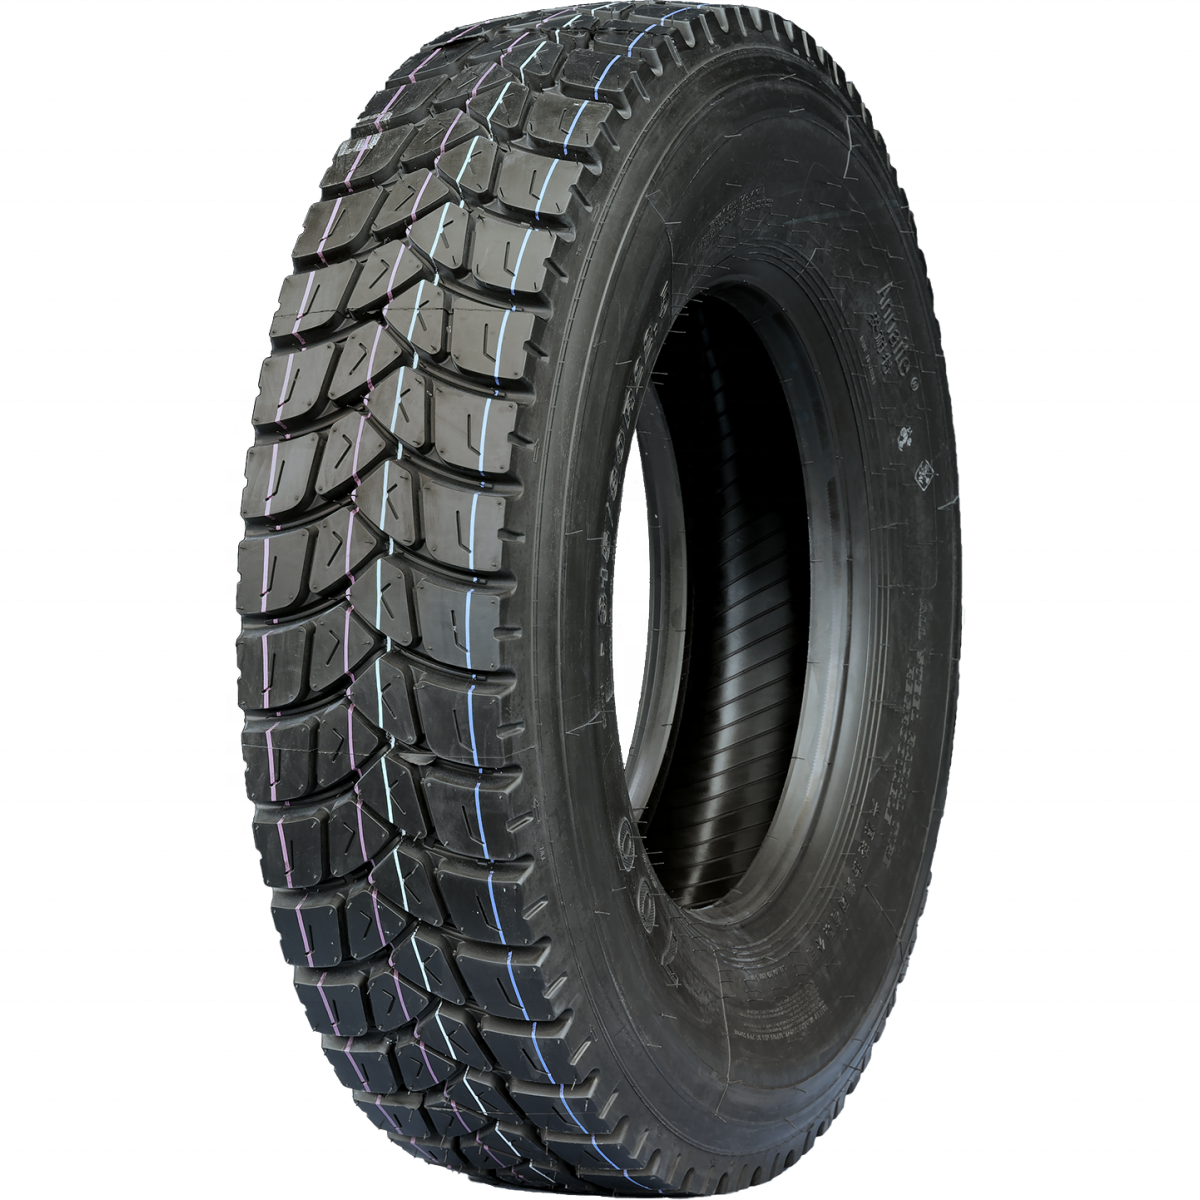 Truck <strong>Tires</strong> 12R22.5 295/80R22.5 315/80R22.5 22PR HD269/CP269/700/906/TR918